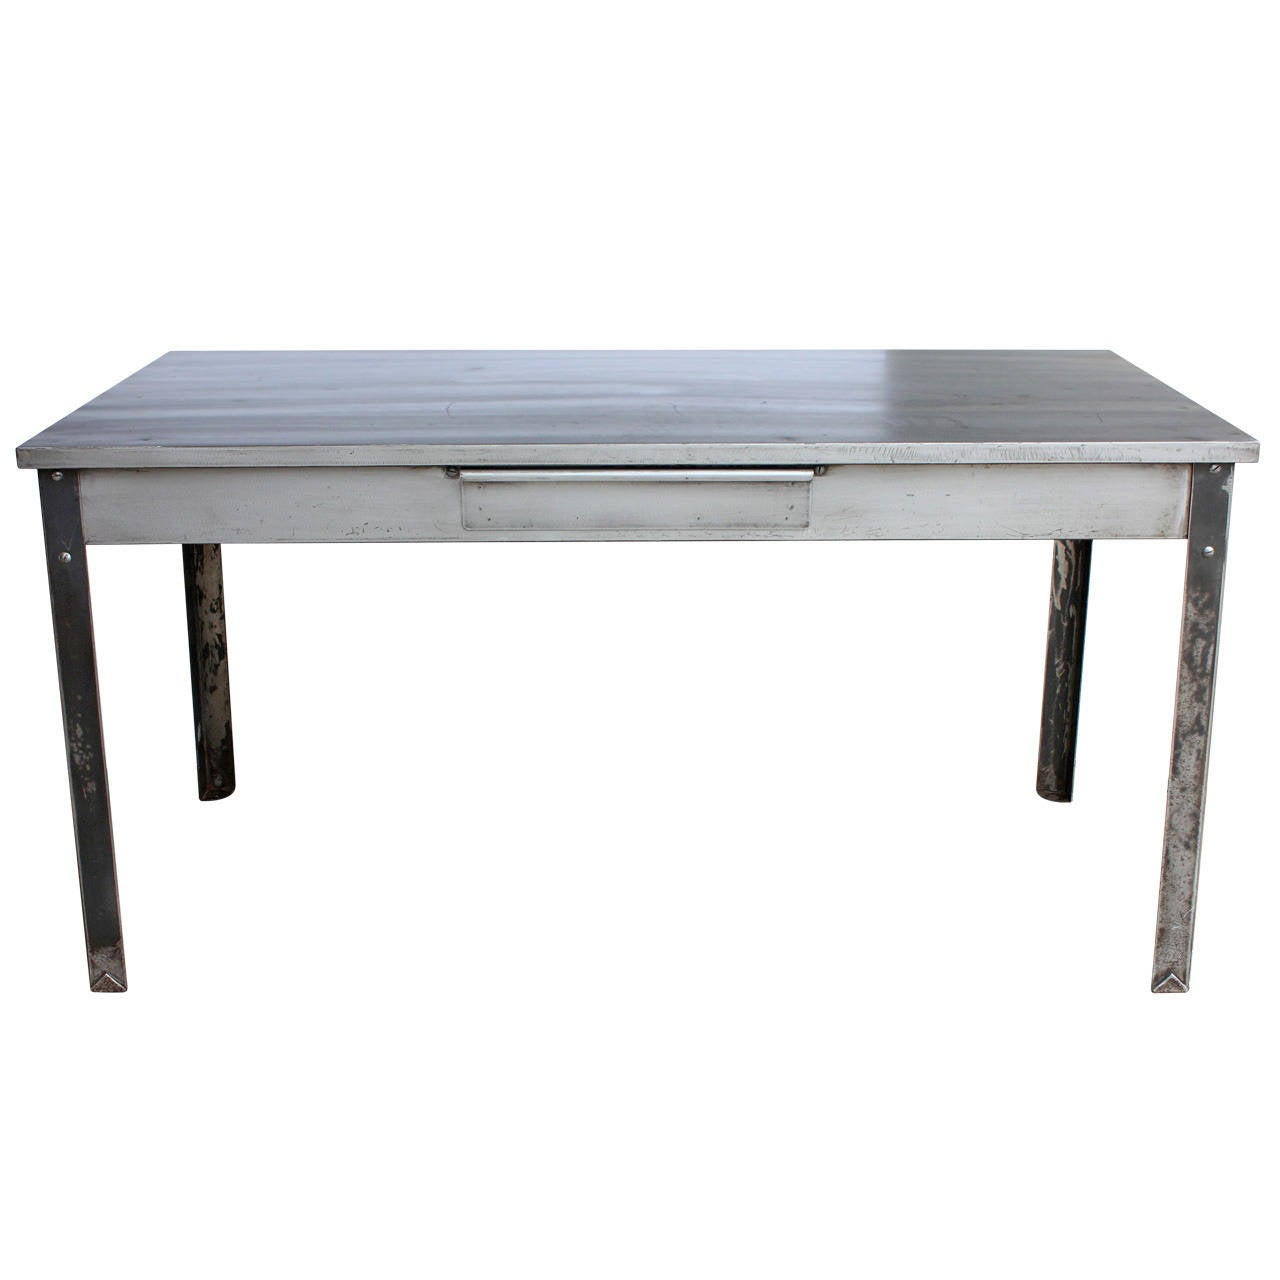 Stylish Antique Industrial Metal Desk At 1stdibs